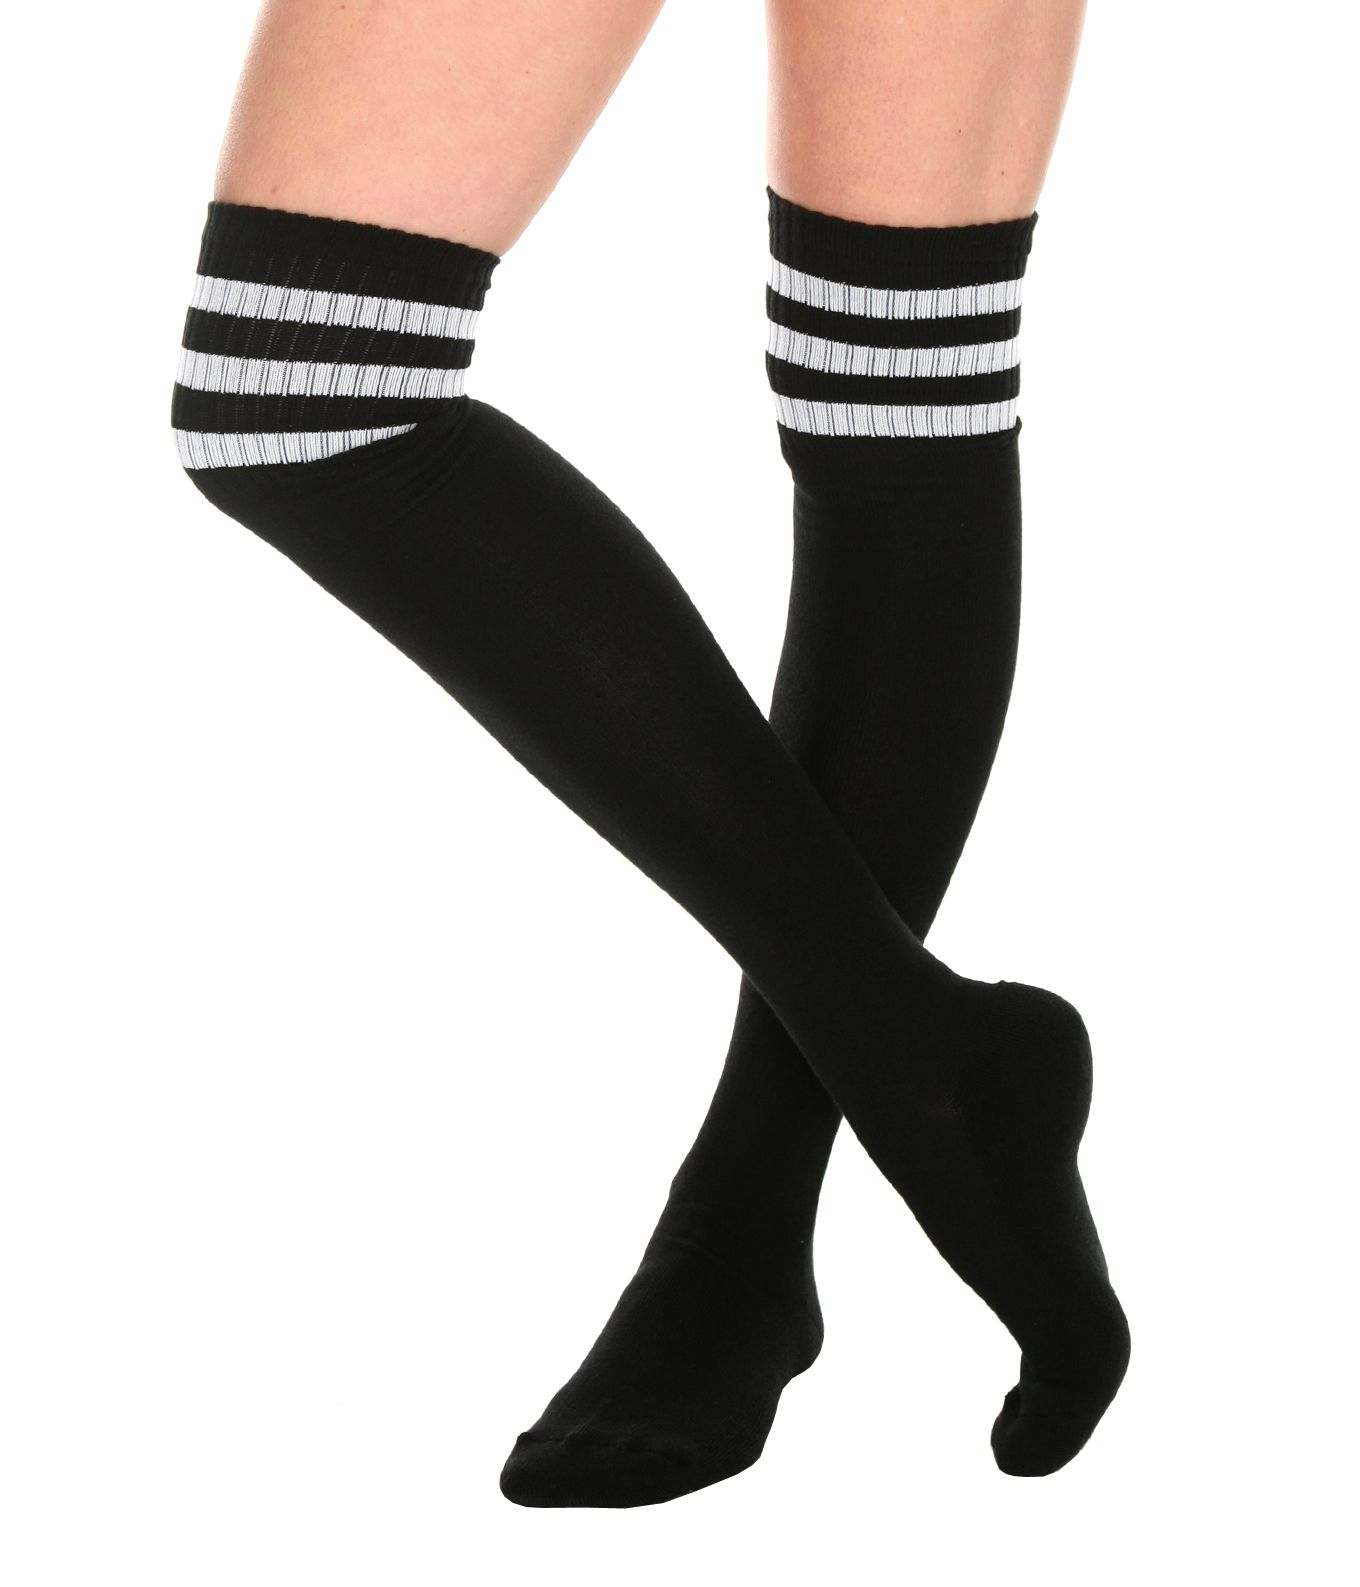 3bef5b3dfd4 This pair of black crew socks features three white stripes at the top.  Extra long